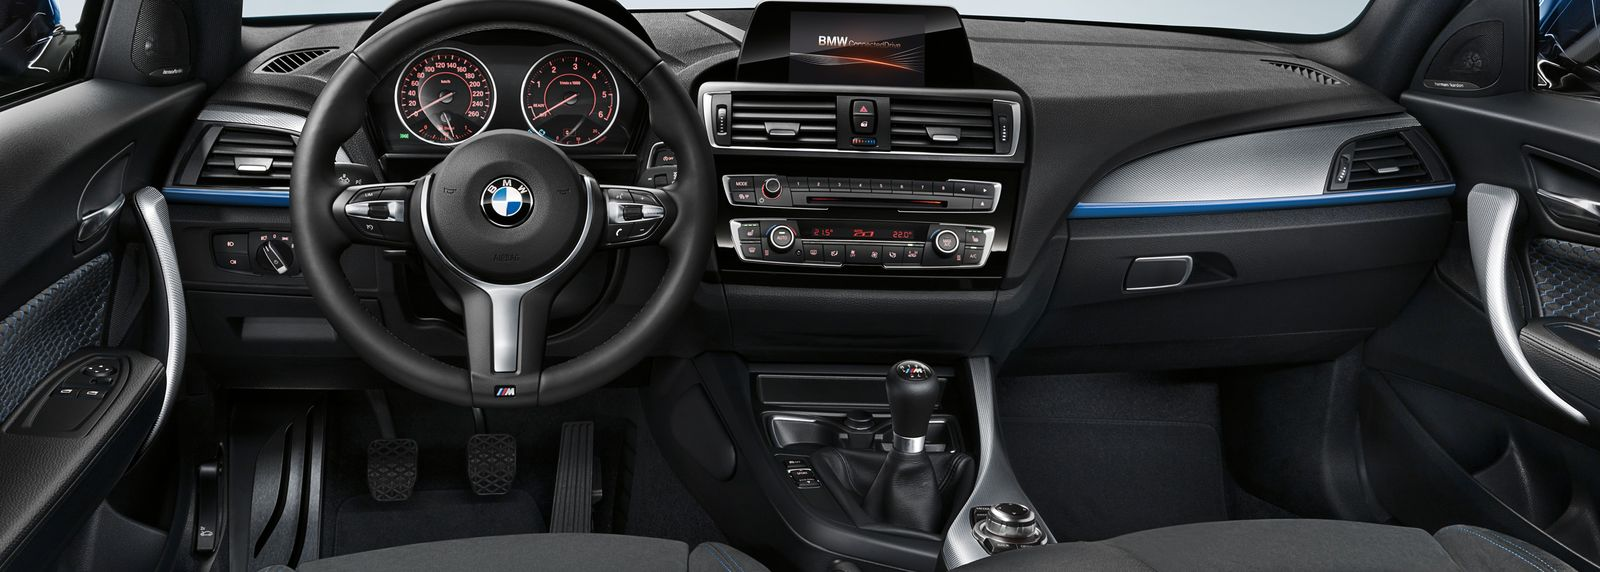 New 2015 Bmw 1 Series Revealed With New Engines And